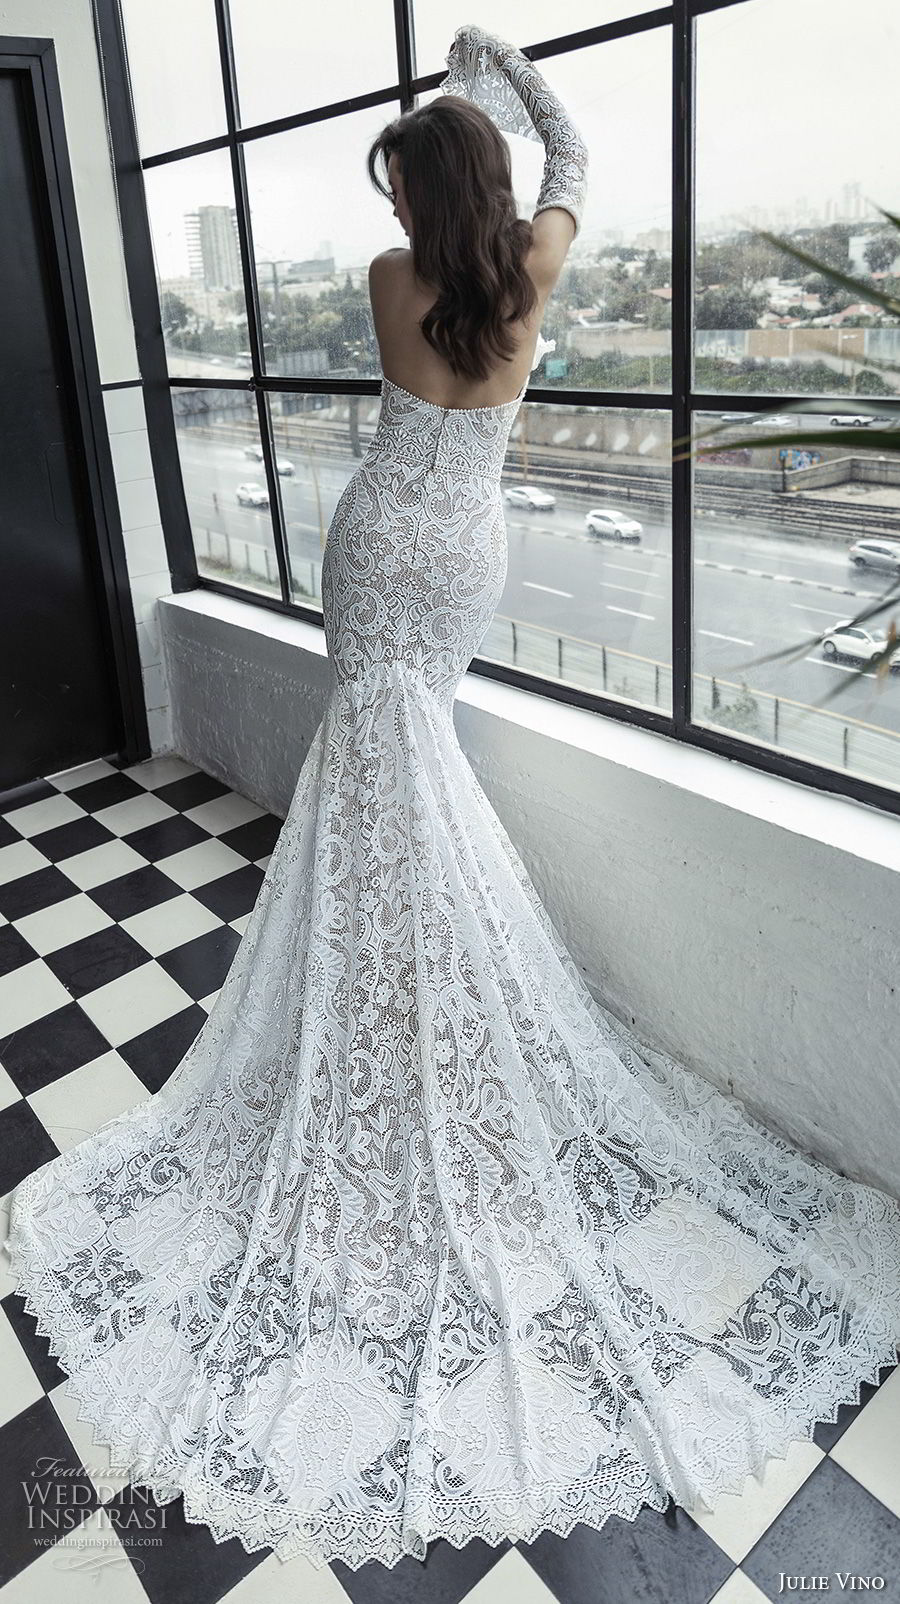 julie vino 2019 romanzo bridal long bell sleeves strapless sweetheart neckline full embellishment sexy elegant fit and flare wedding dress chapel train (5) bv